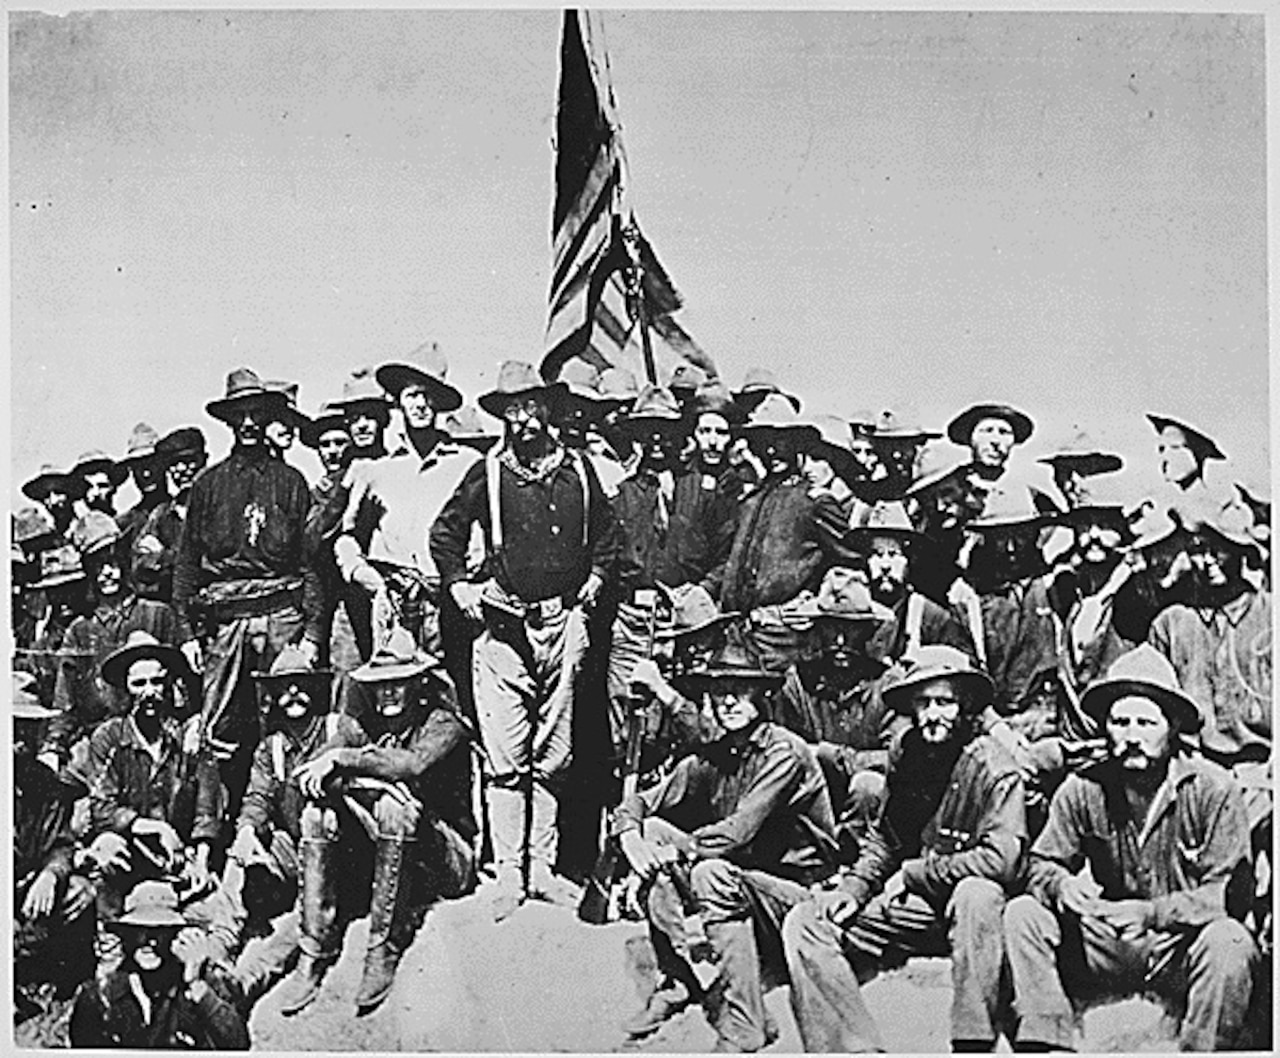 Several soldiers wearing wide-brimmed hats stand around a U.S. flag with then-Army Col. Theodore Roosevelt.